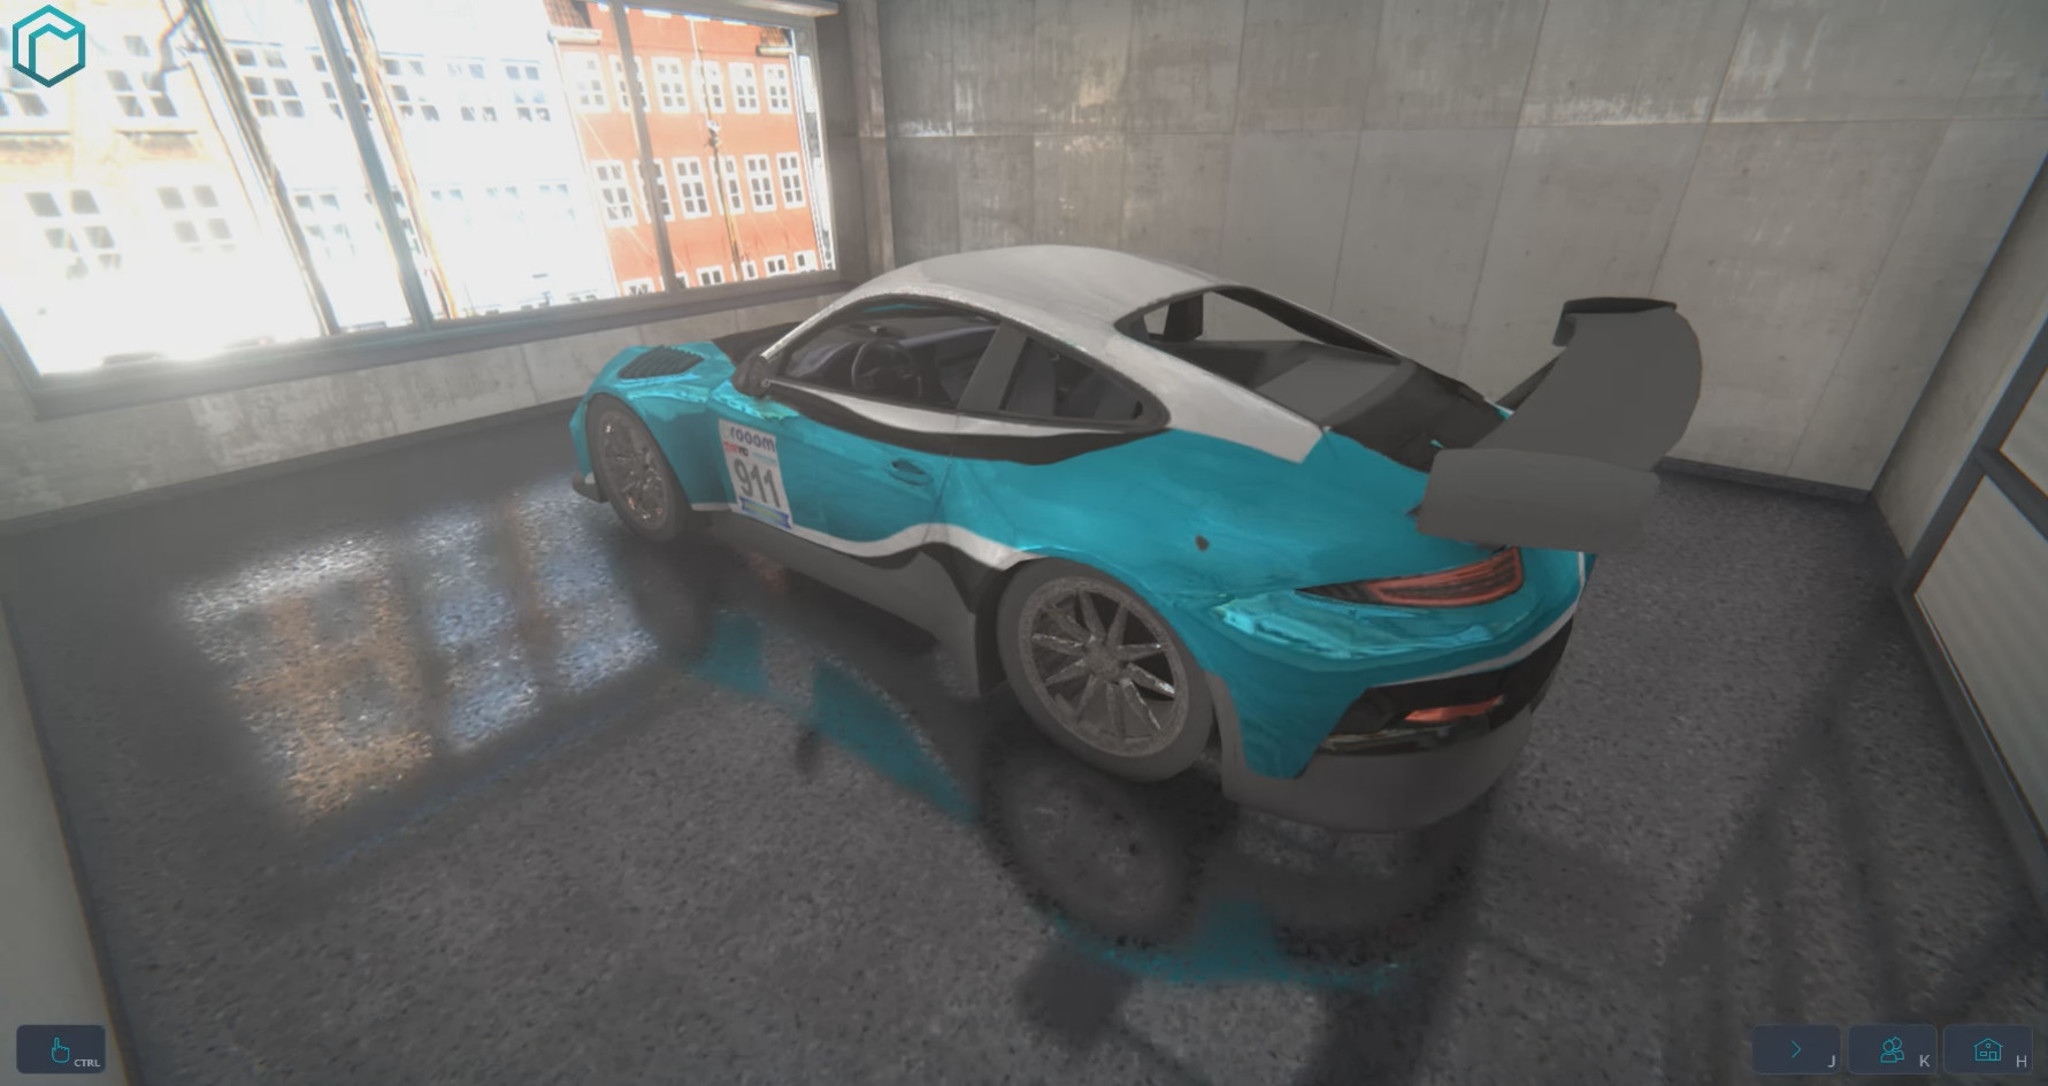 VR environment with car